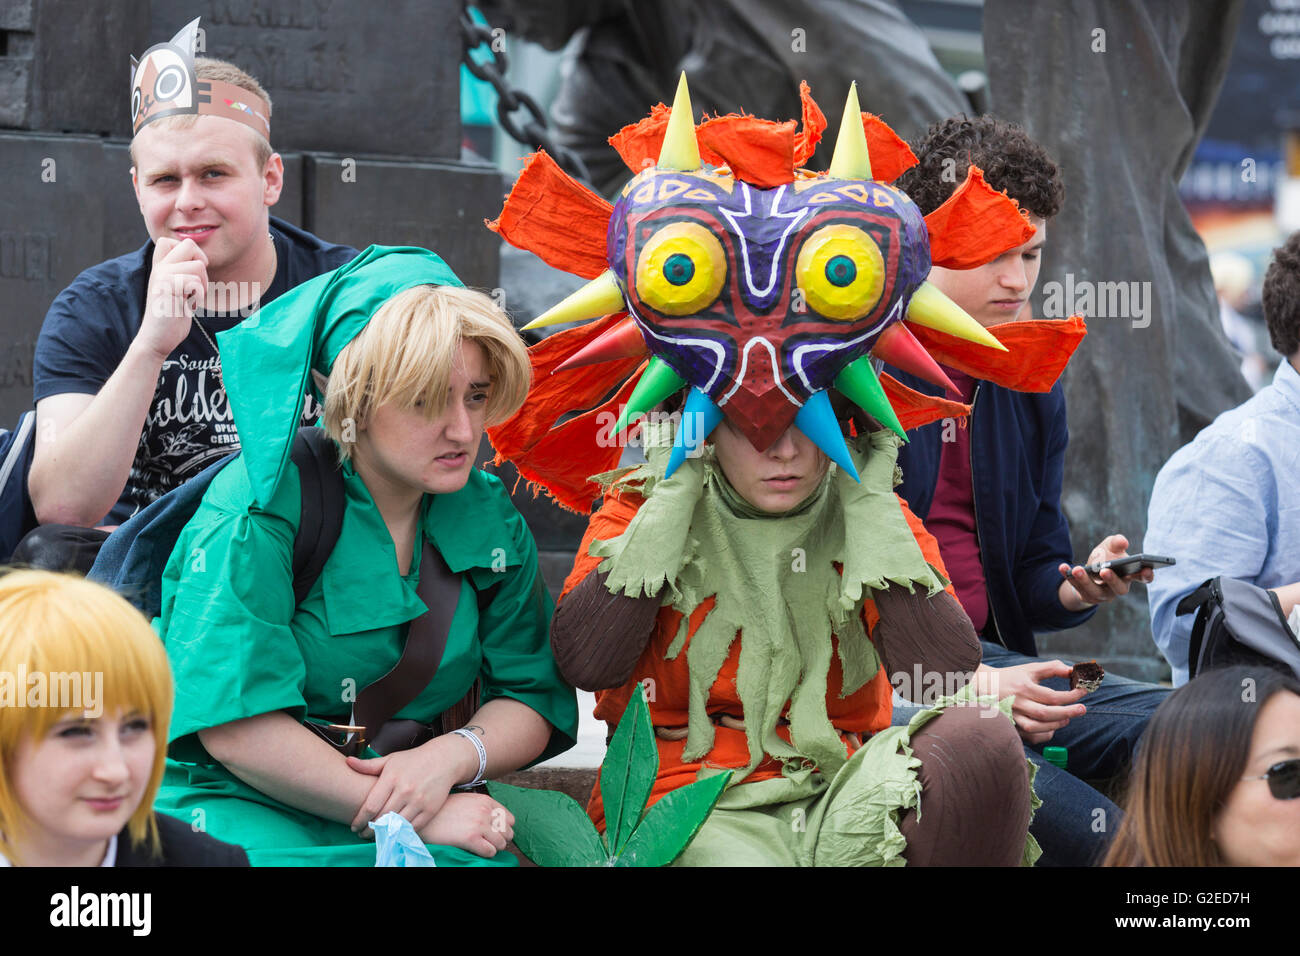 London, UK. 29 May 2016. Cosplayers outside the venue. Last day of the MCM London ComicCon at Excel Exhibition Centre. - Stock Image